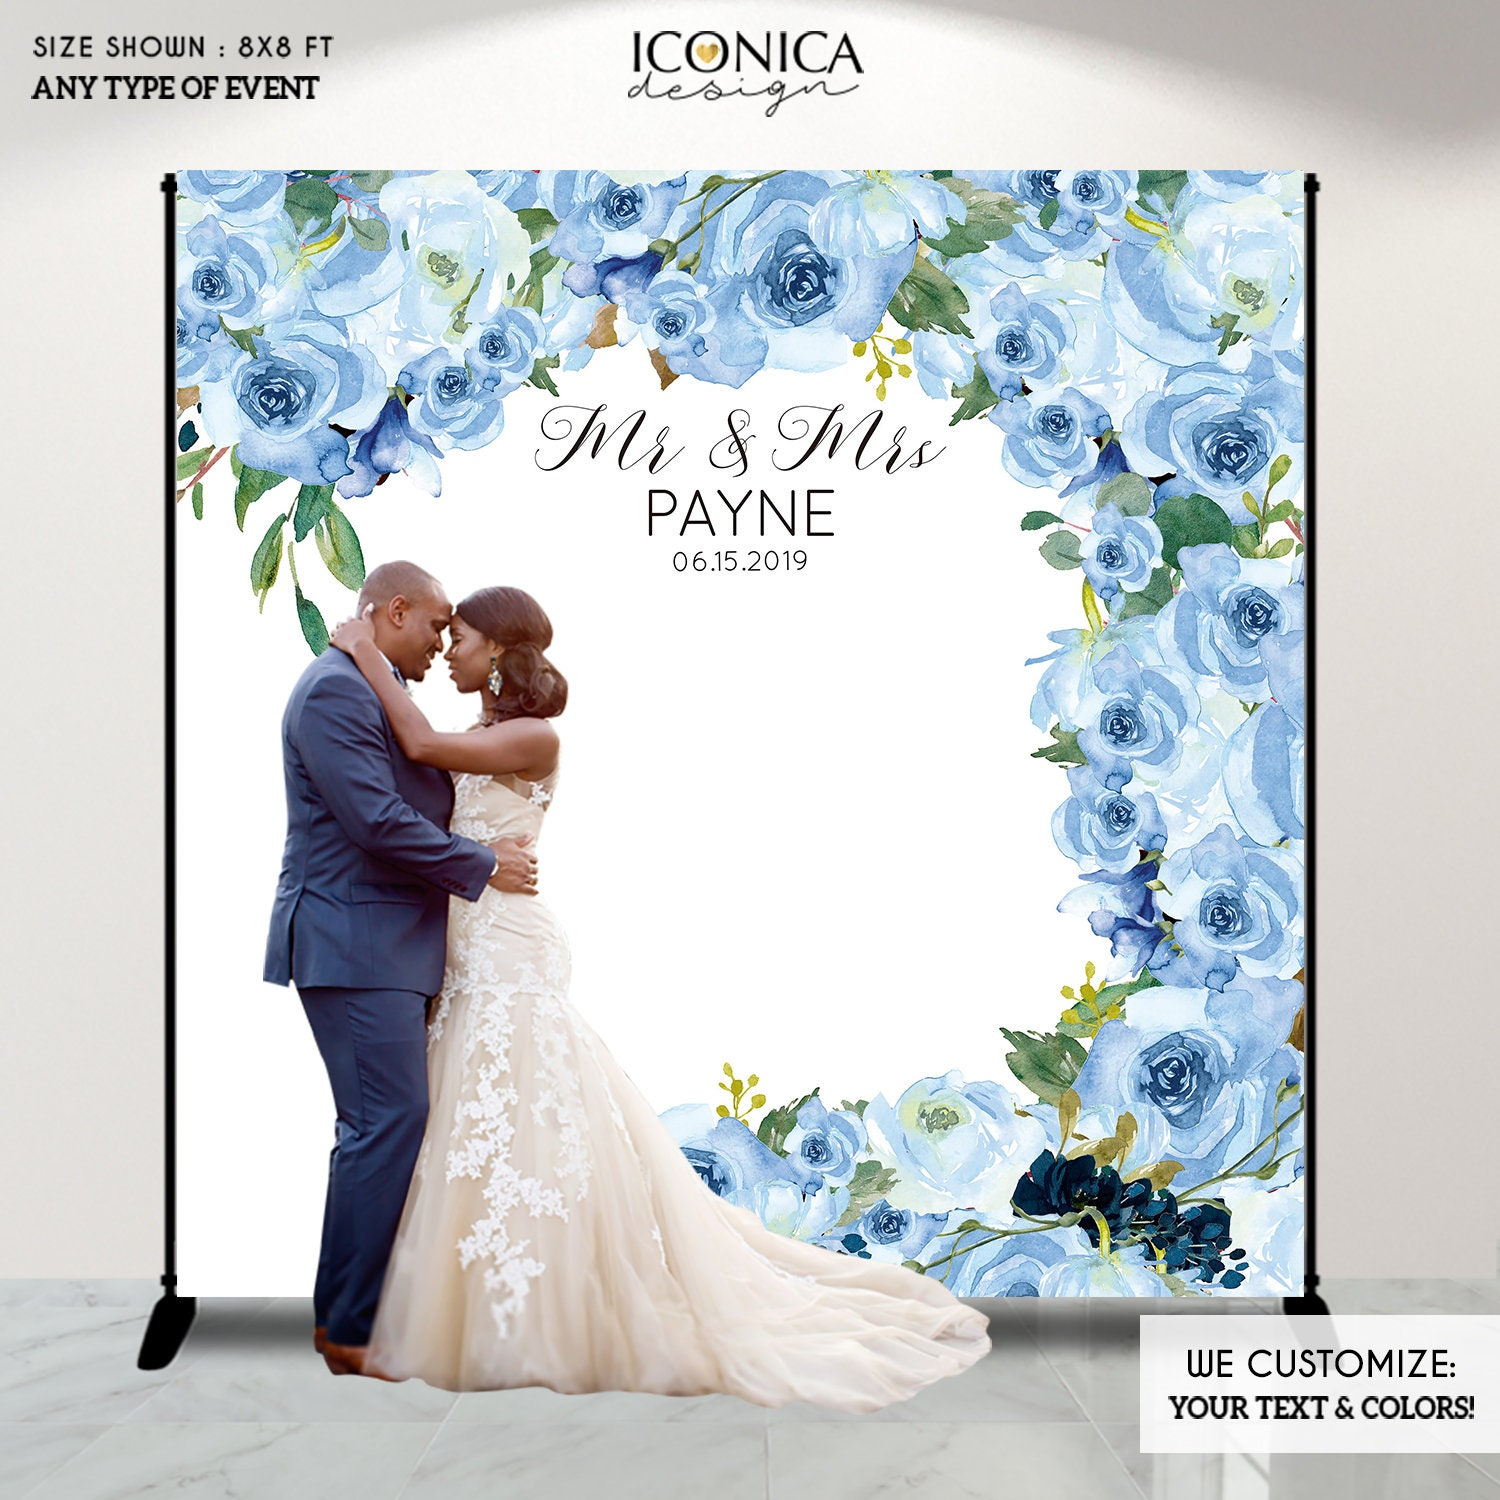 Wedding Photo Backdrop Decor Fabric Backdrop Personalized Photo Backdrop Engagement Party Banner Floral Blue Watercolor Backdrop Bwd0049